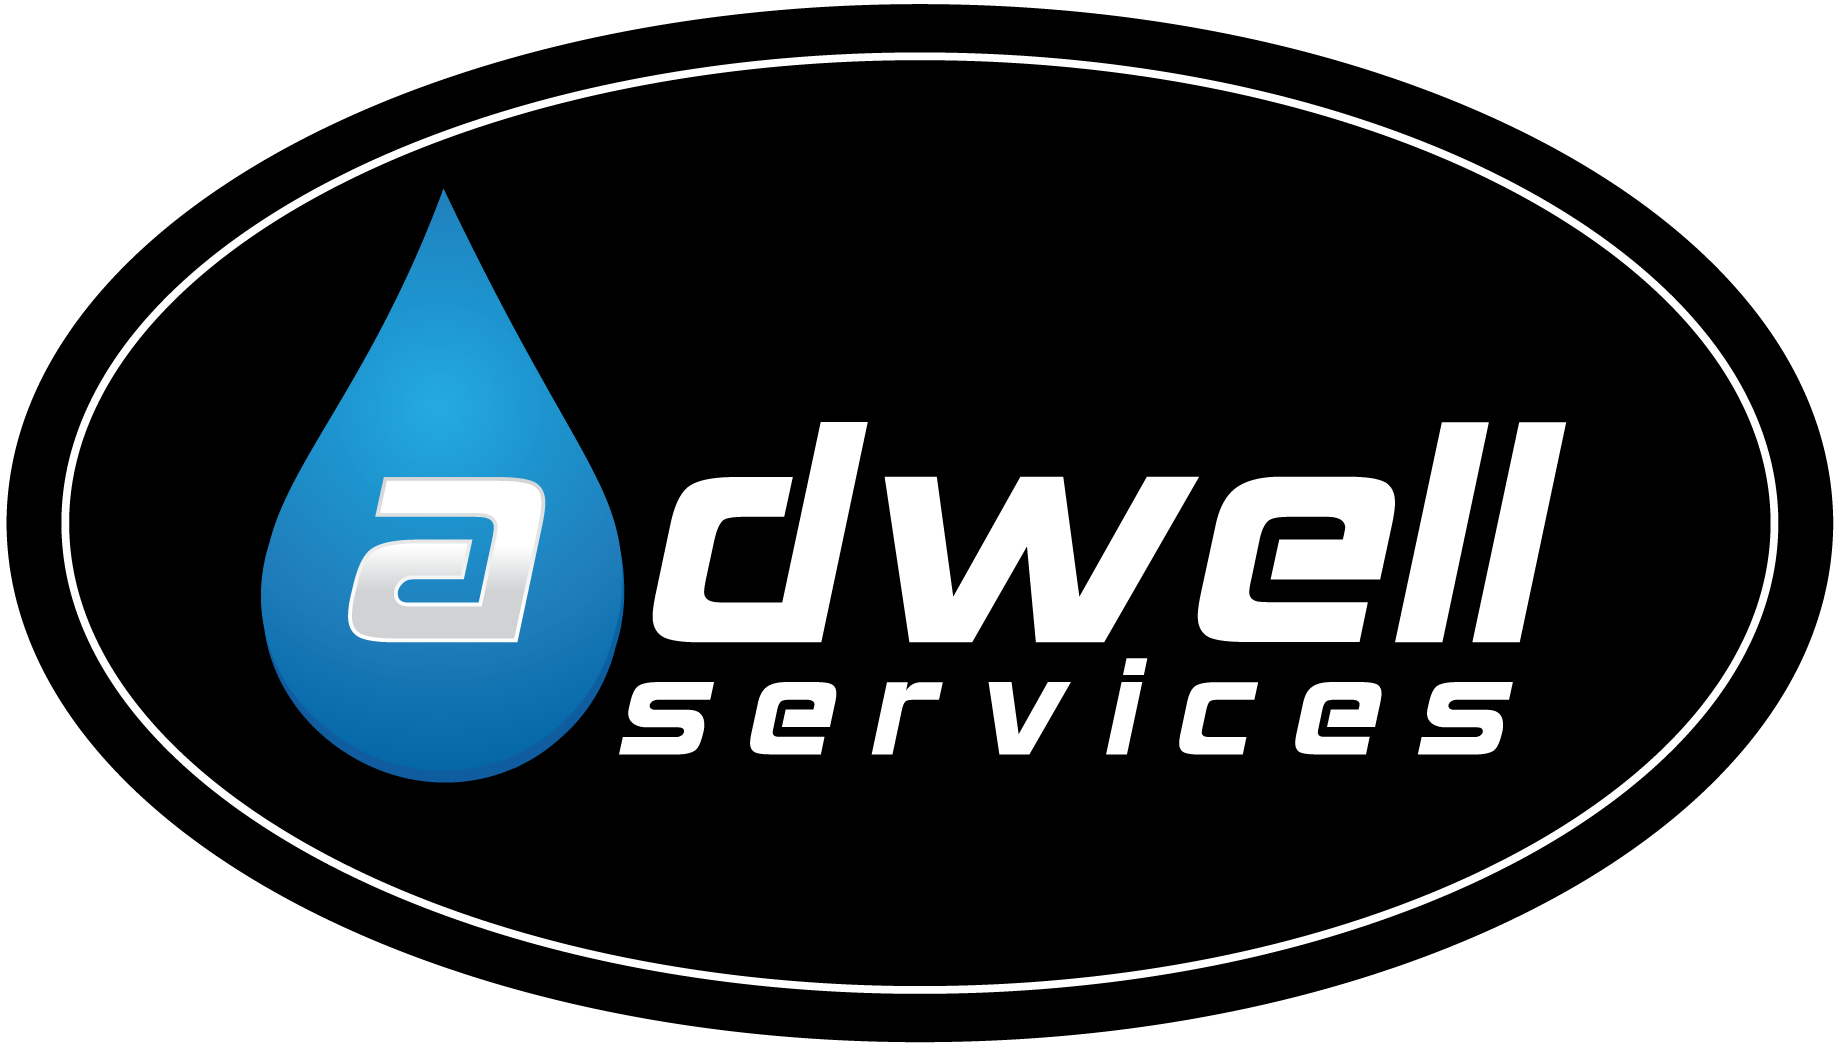 Adwell Services logo